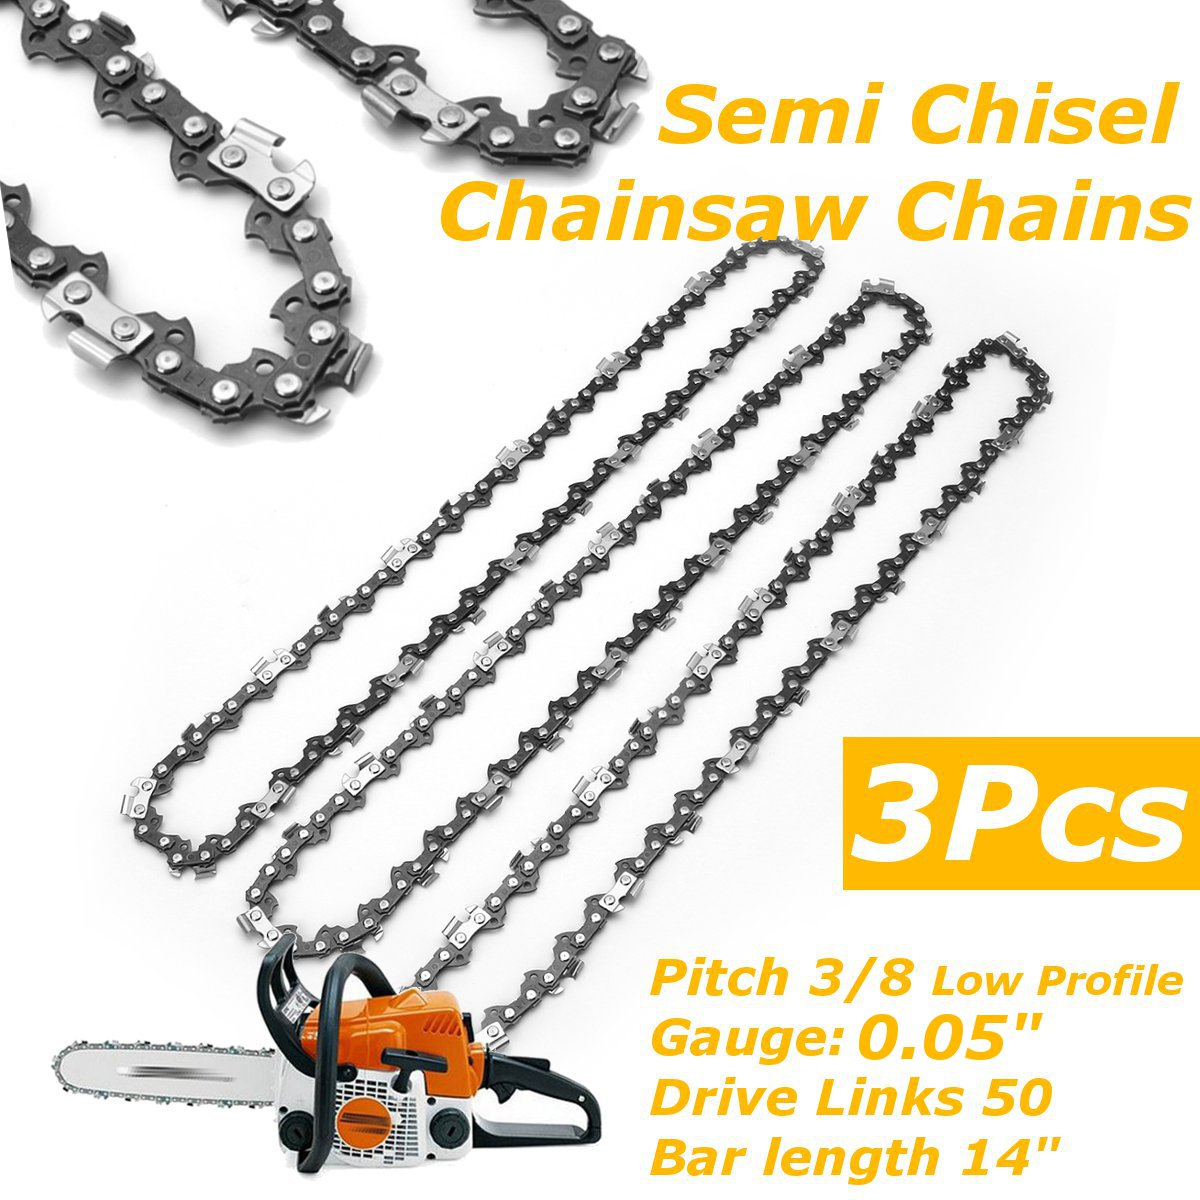 3Pcs Chainsaw Semi Chisel Chains 3/8LP 0.05 For Stihl MS170 MS171 MS180 MS181 Electric Saw image